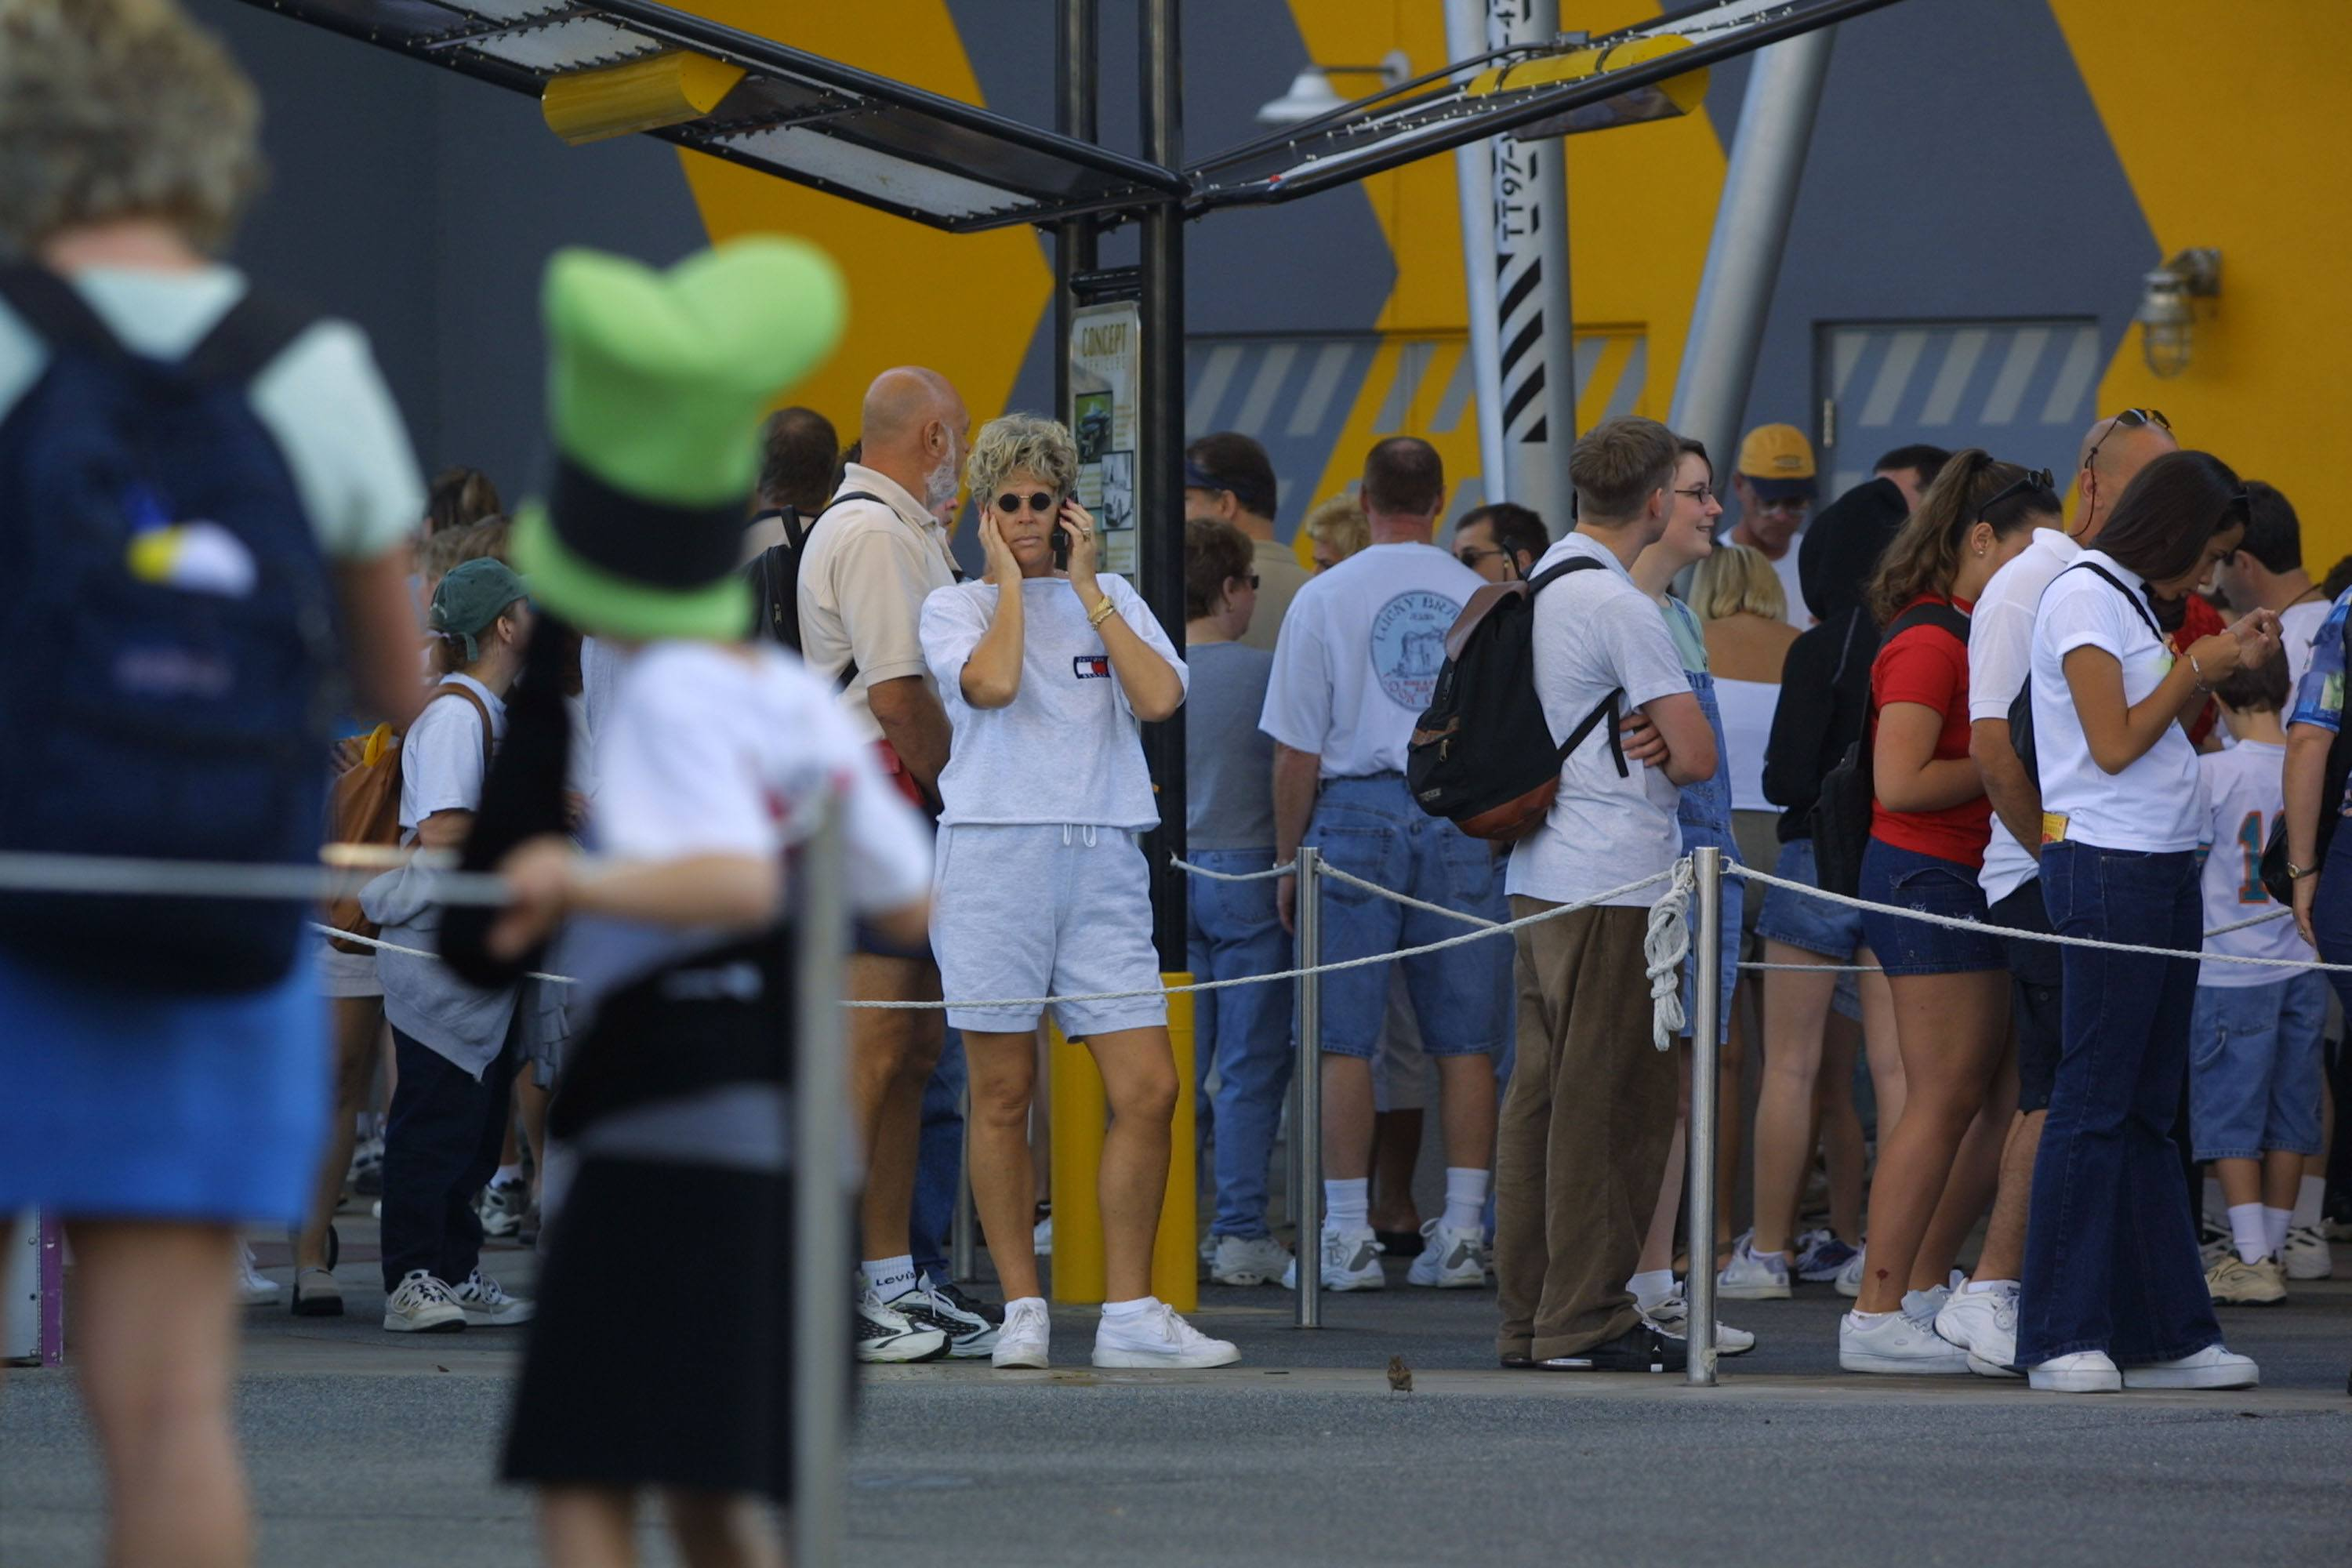 People stand in line at the Test Track ride at Walt Disney's Epcot Center